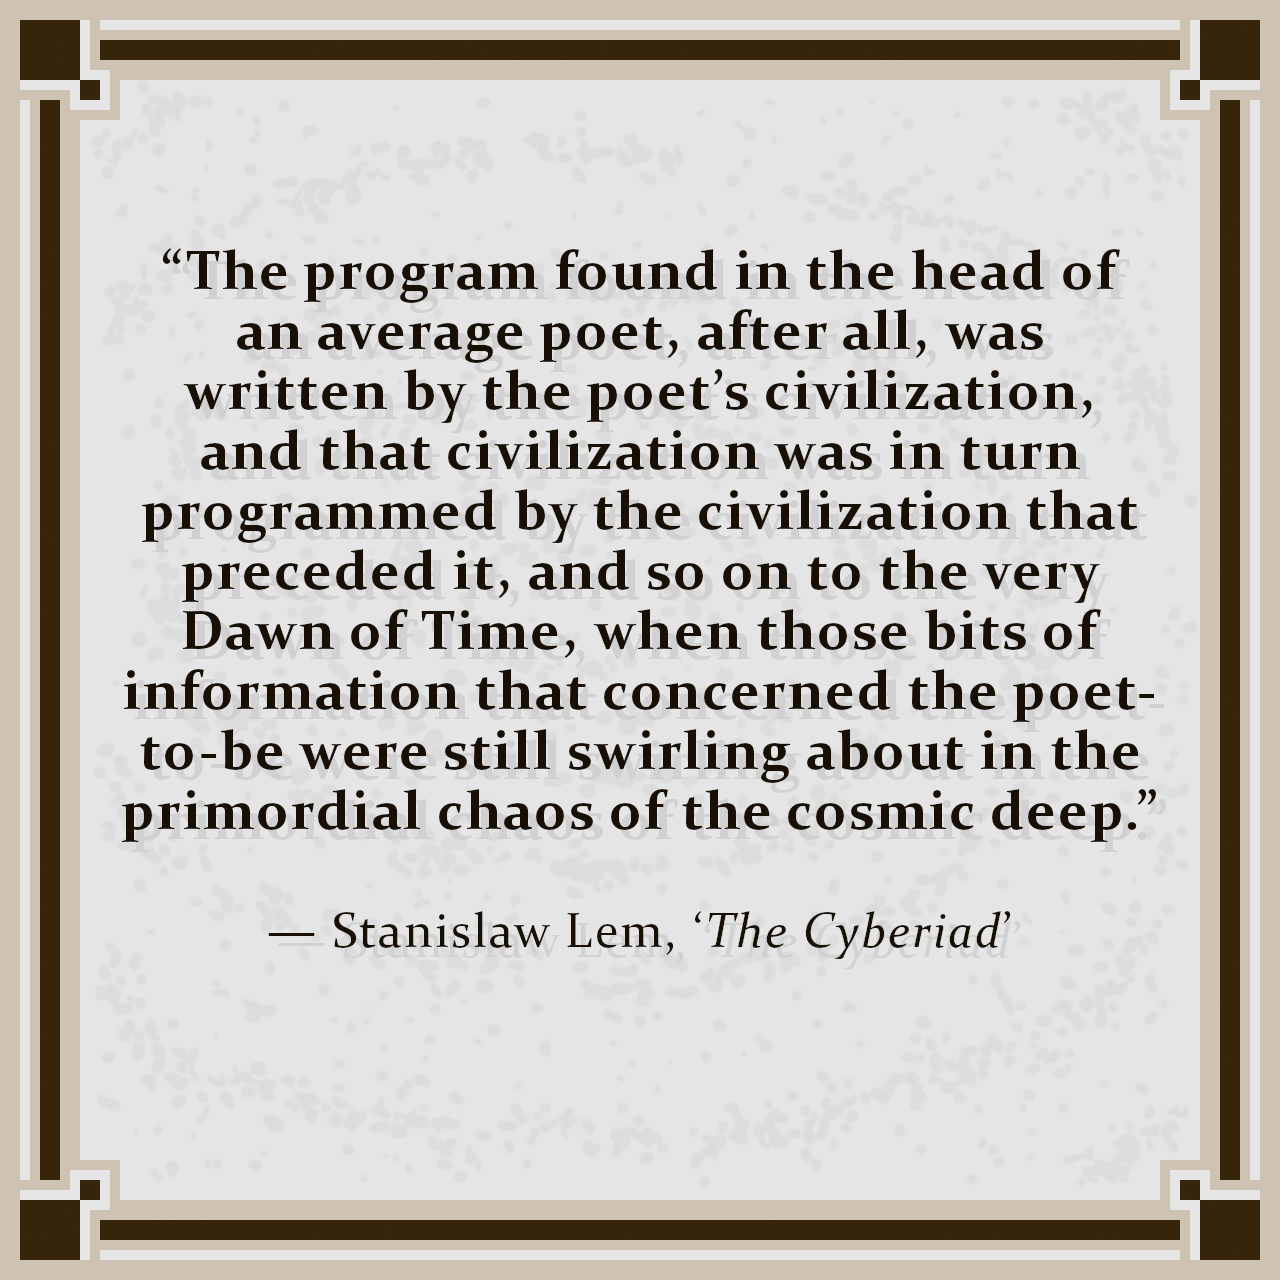 """""""The program found in the head of an average poet, after all, was written by the poet's civilization, and that civilization was in turn programmed by the civilization that preceded it, and so on to the very Dawn of Time, when those bits of information that concerned the poet-to-be were still swirling about in the primordial chaos of the cosmic deep."""" — Stanislaw Lem, 'The Cyberiad'"""